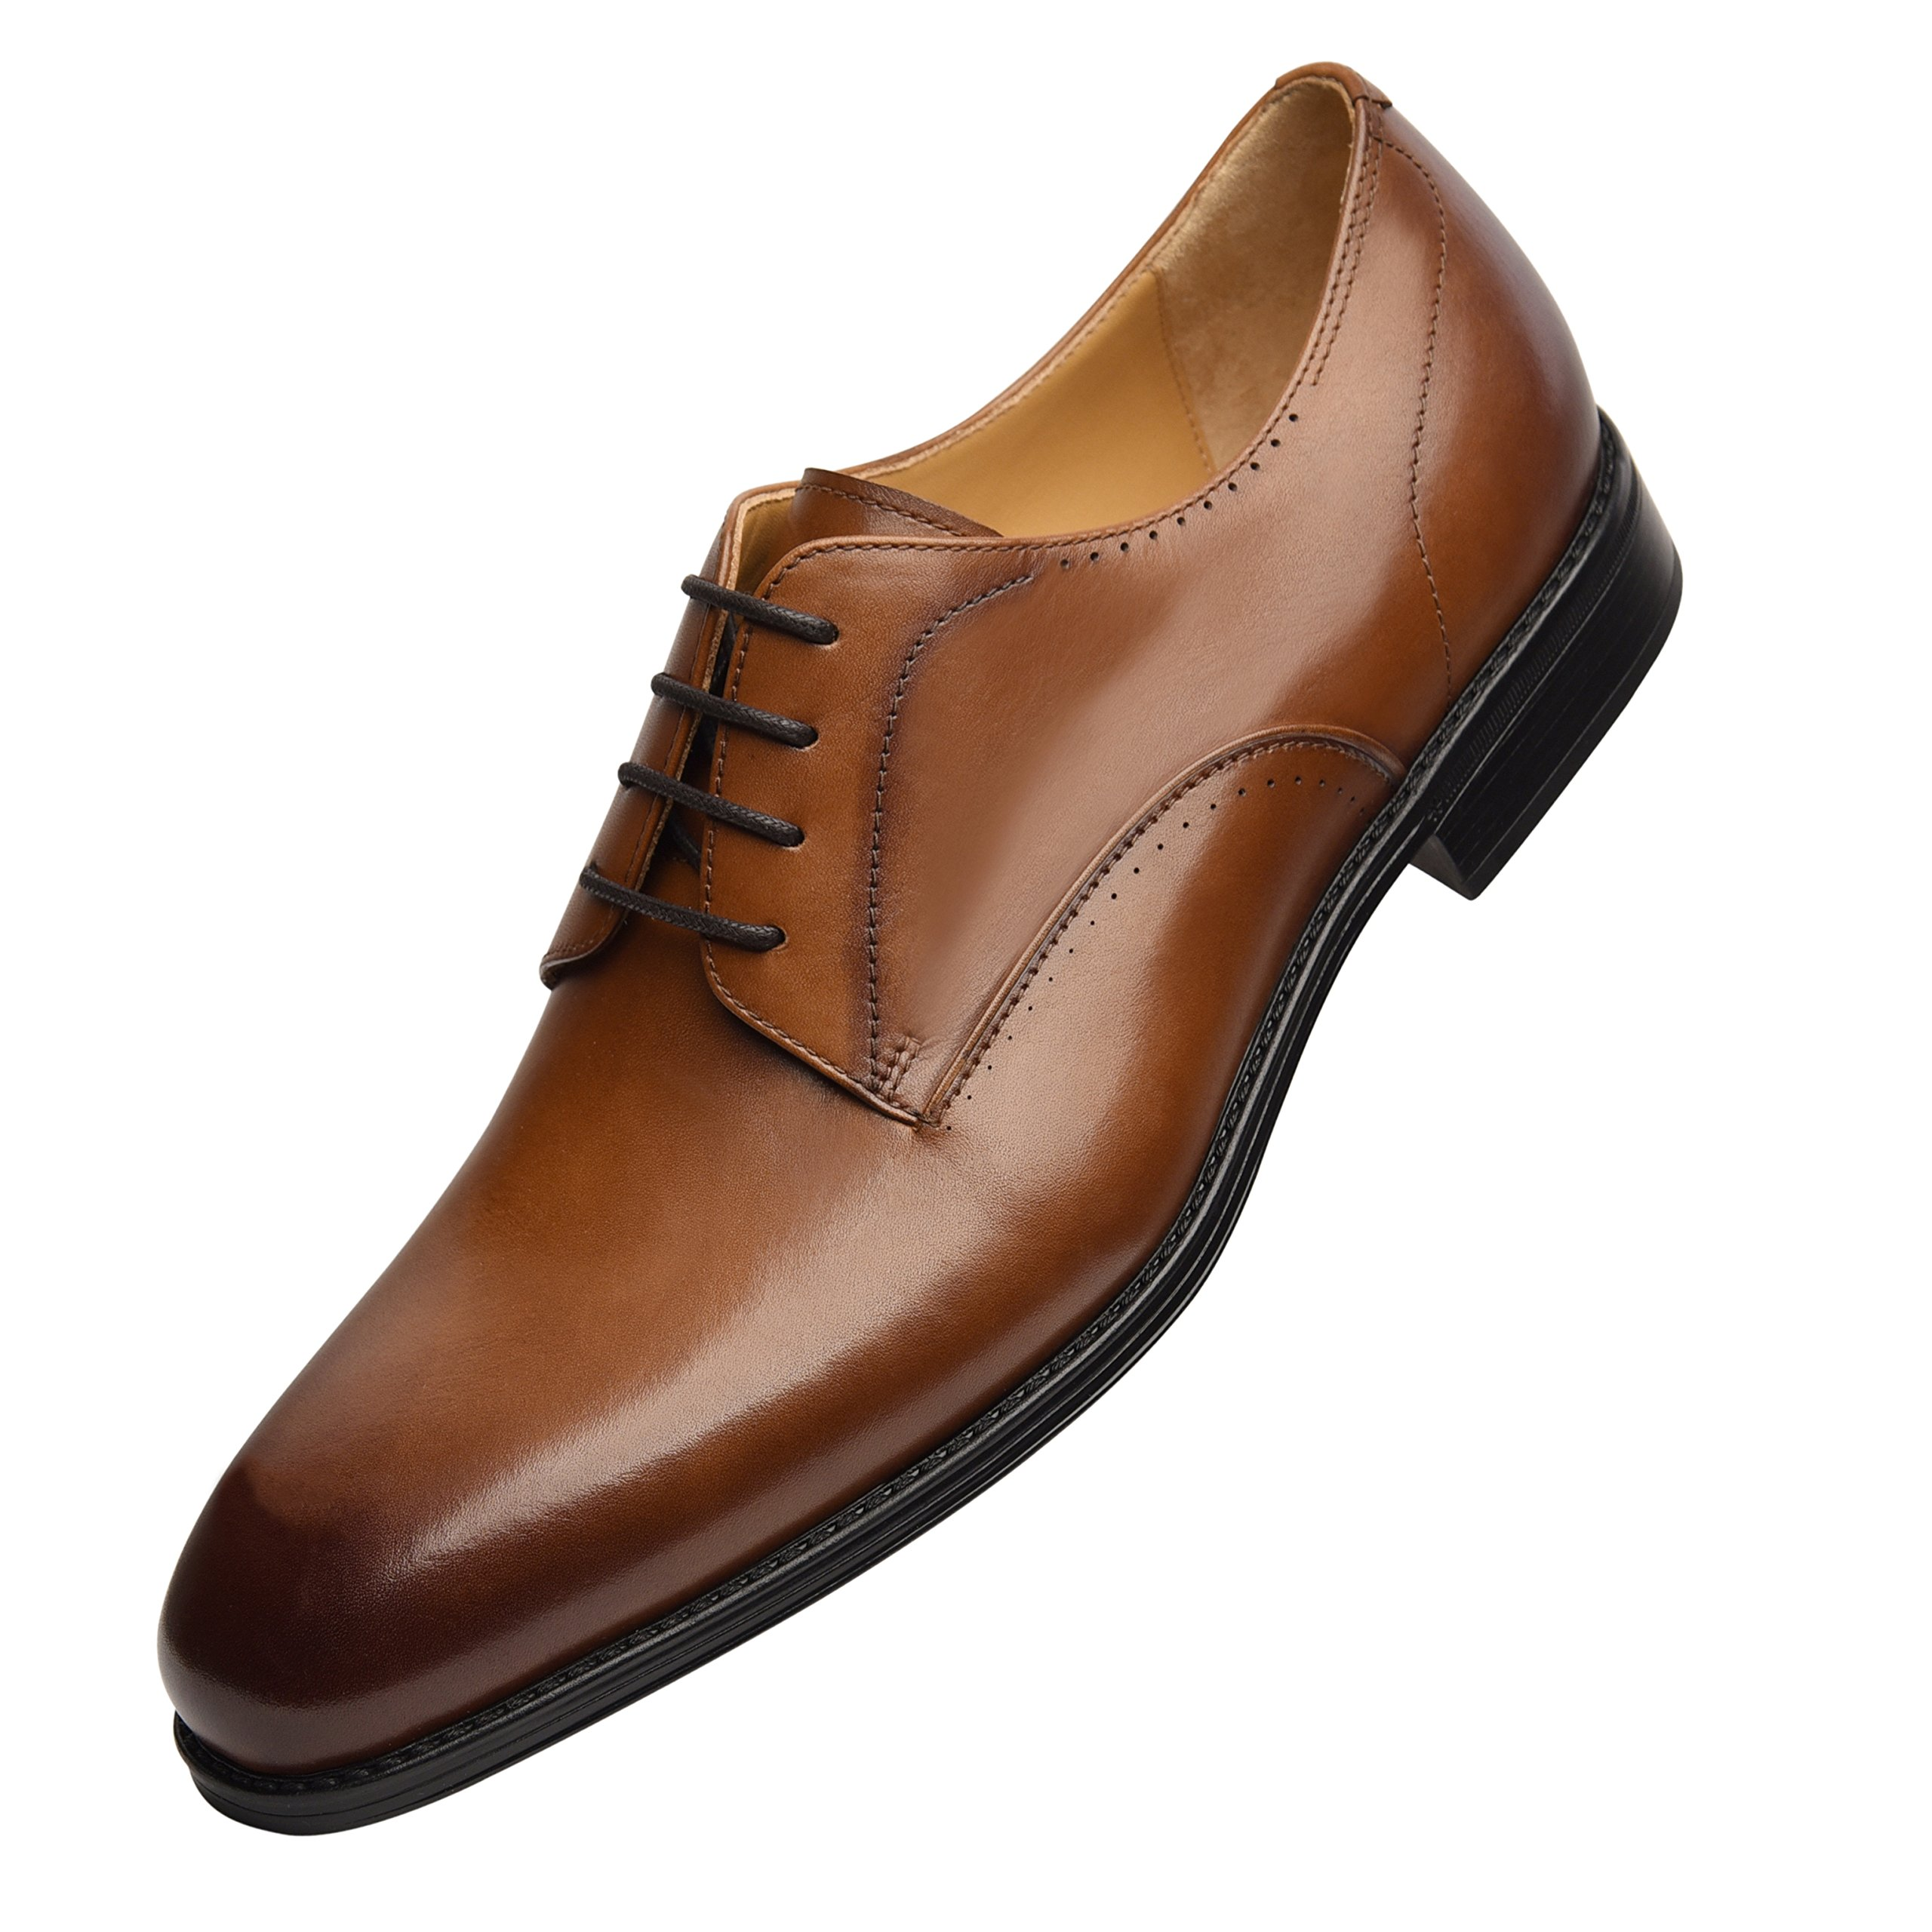 COMOTEK Mens Dress Shoes with Comfort Removable Soft Leather Insoles, 2018 Classic Oxford Design, Handcrafted by Full Grain Leather-Andros, TAN, US10.5-1